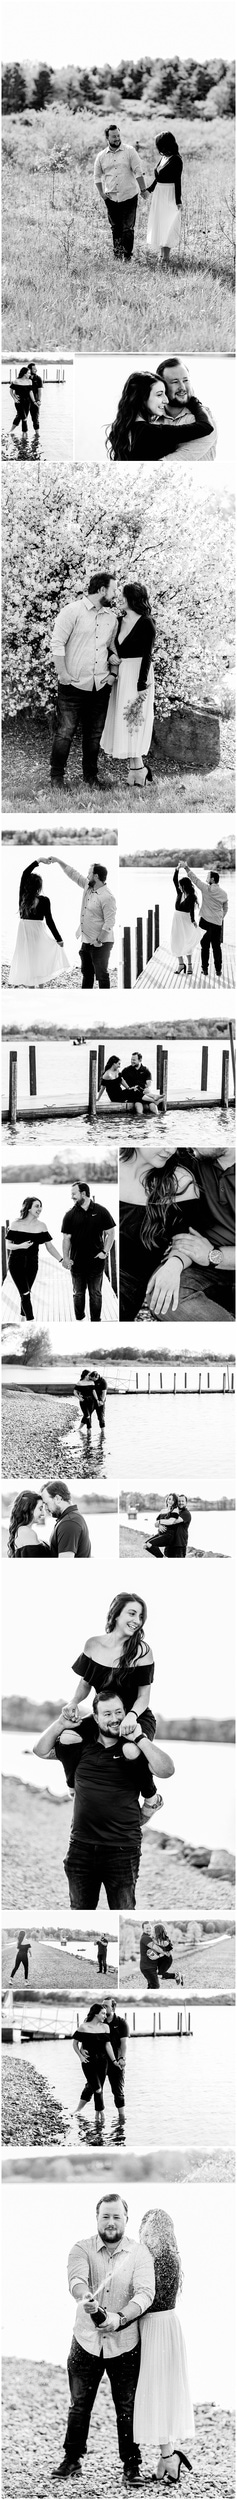 Engagement Session at Montour Preserve